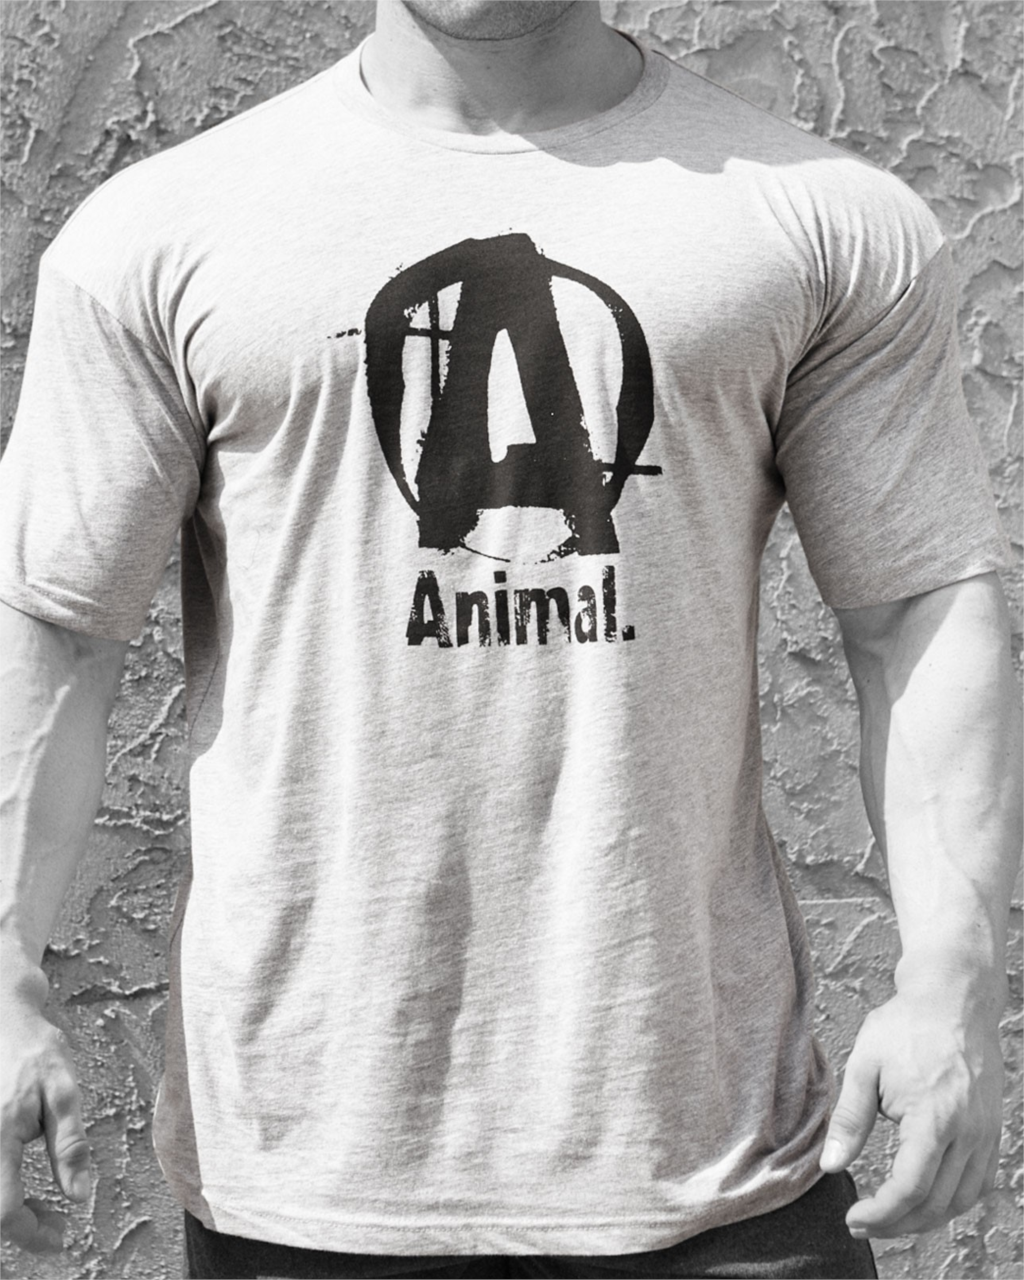 Mens Cotton T-shirt 2019 New Gyms Fitness Workout T Shirt Man Summer Casual Fashion Creativity Print Tees Tops Brand Clothing